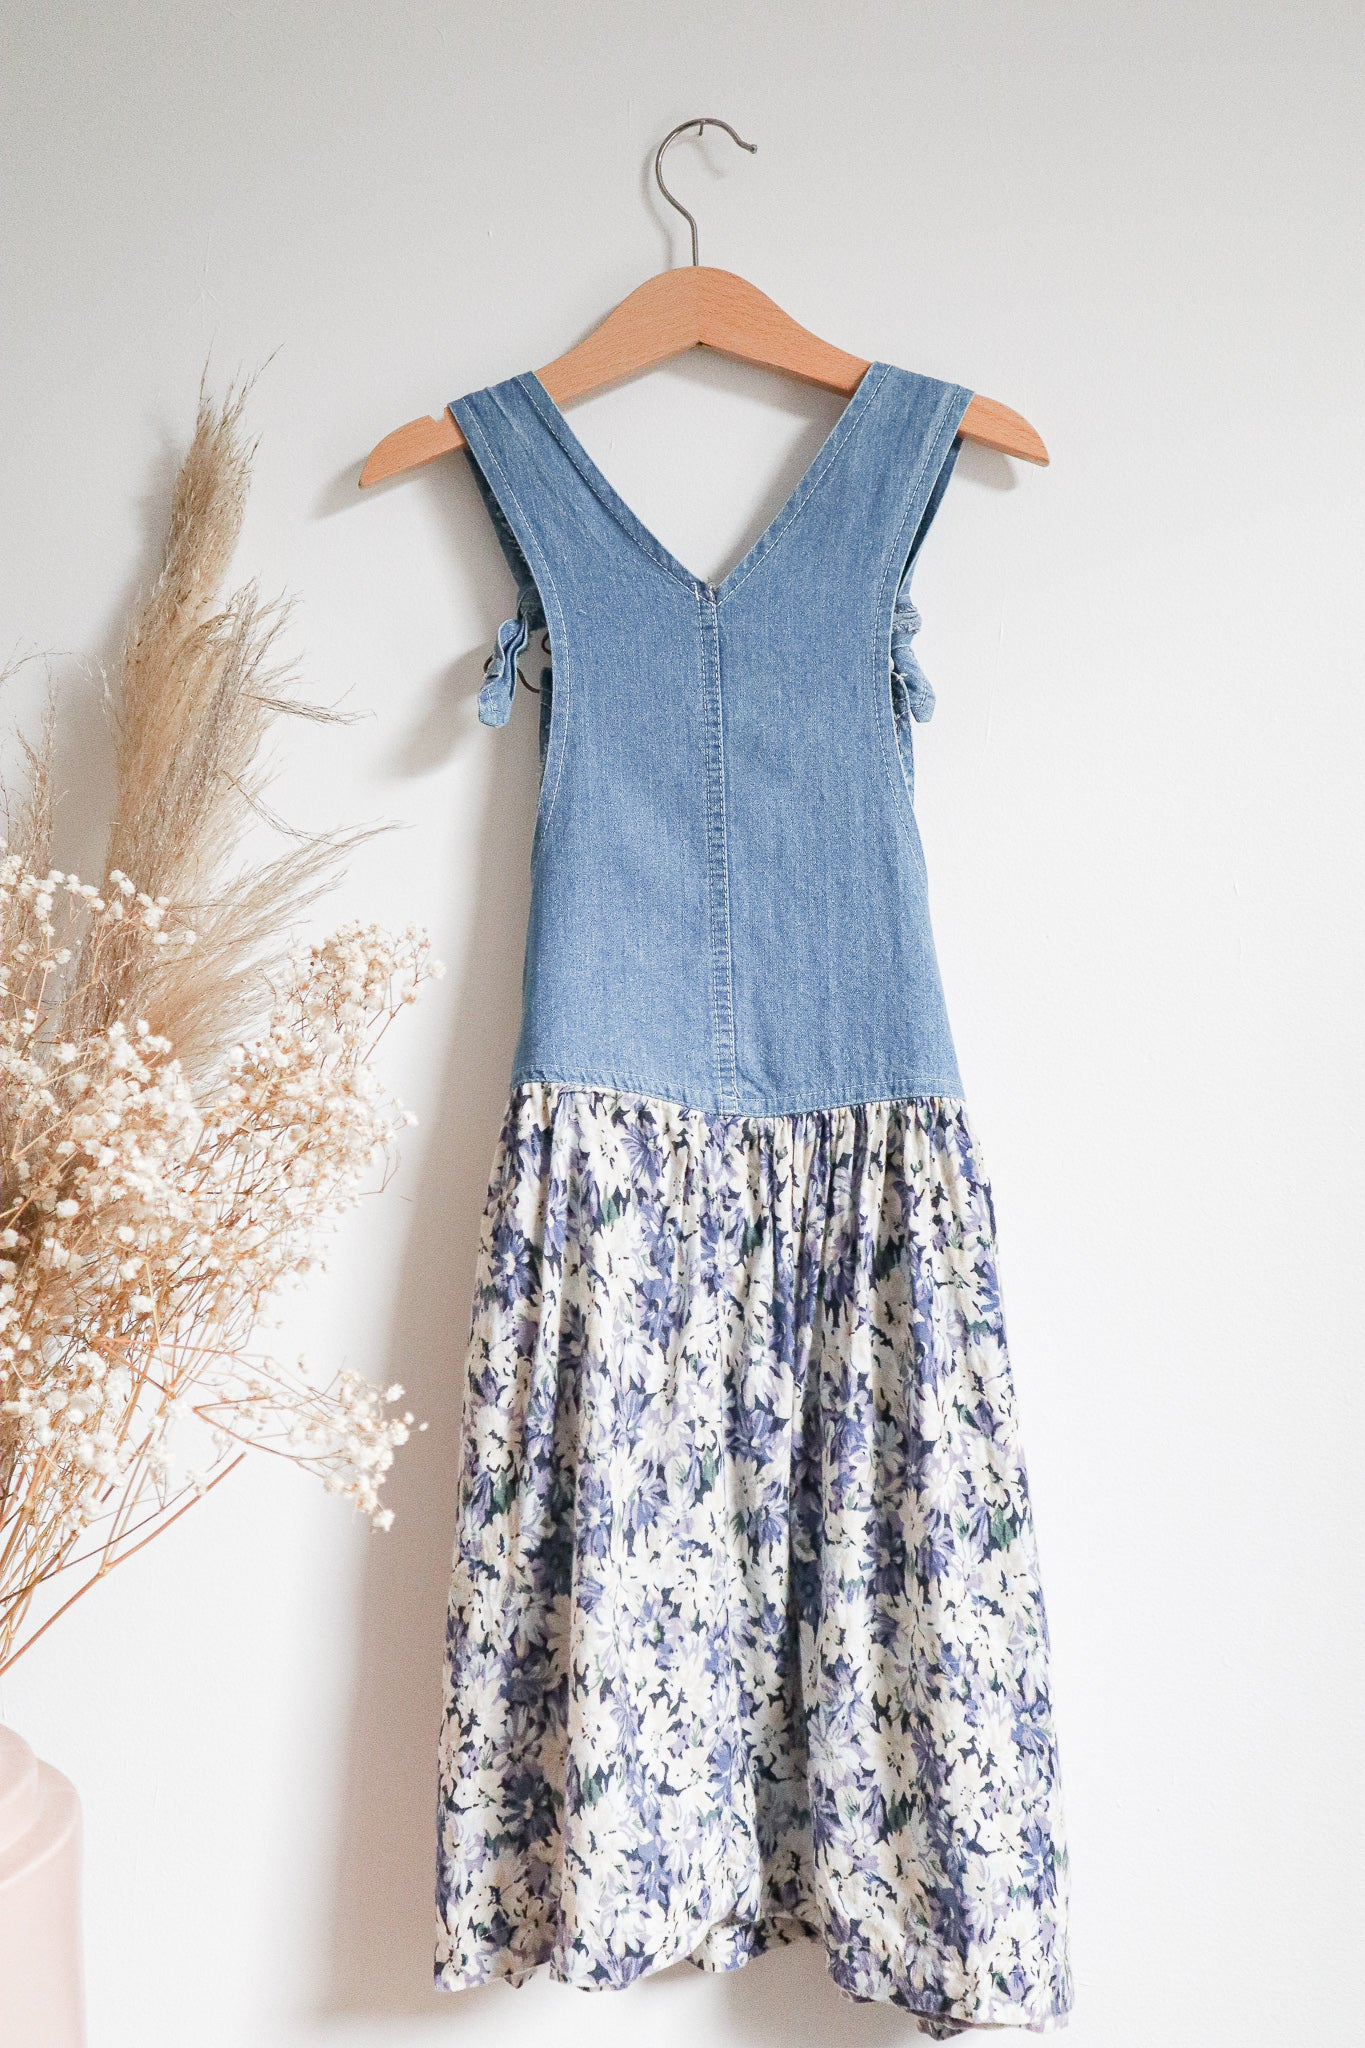 VINTAGE Kids 1980's Denim Bib Floral Overall Dress Size 5-7